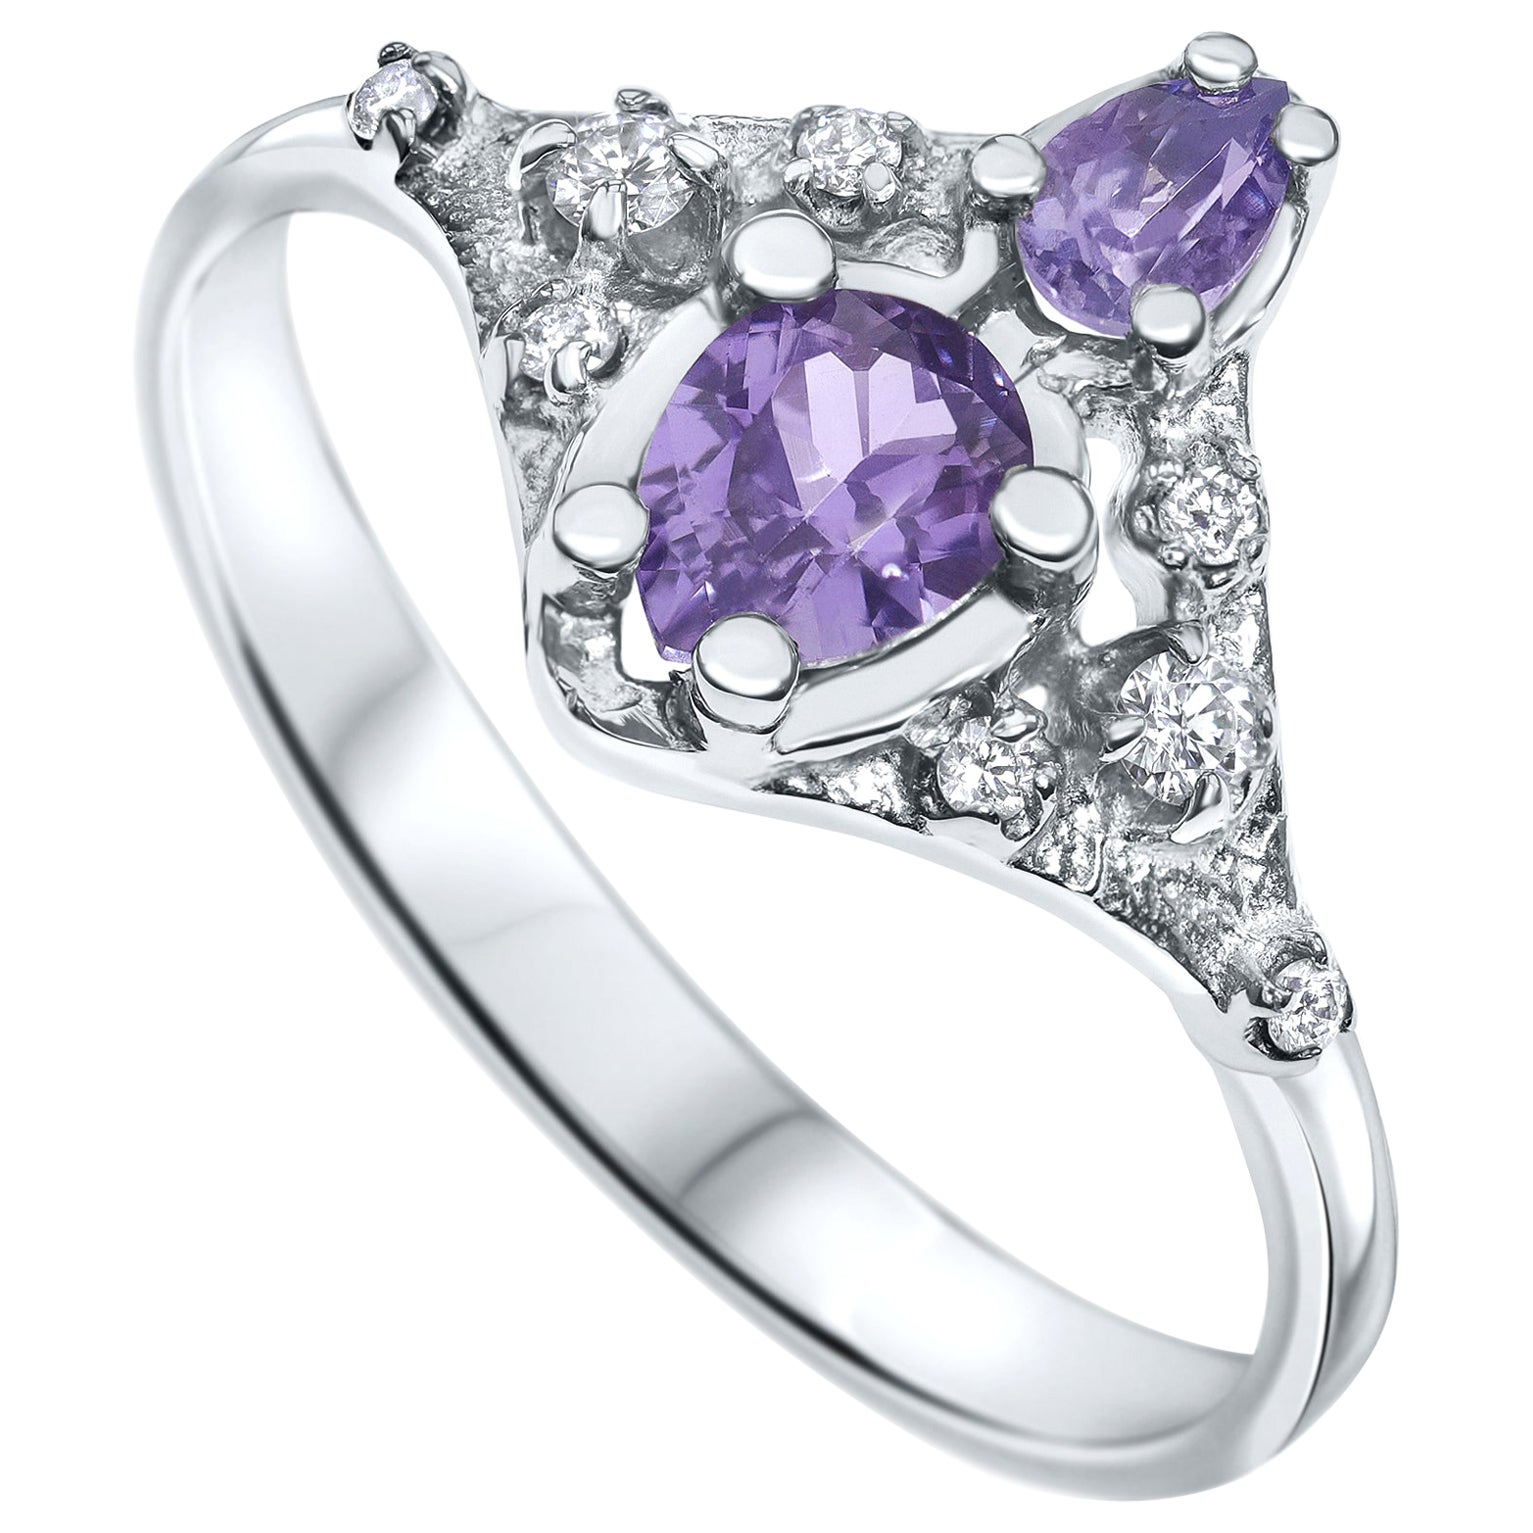 0.70 Carat Natural Lilac Sapphire and Real Diamonds Ring - Shlomit Rogel